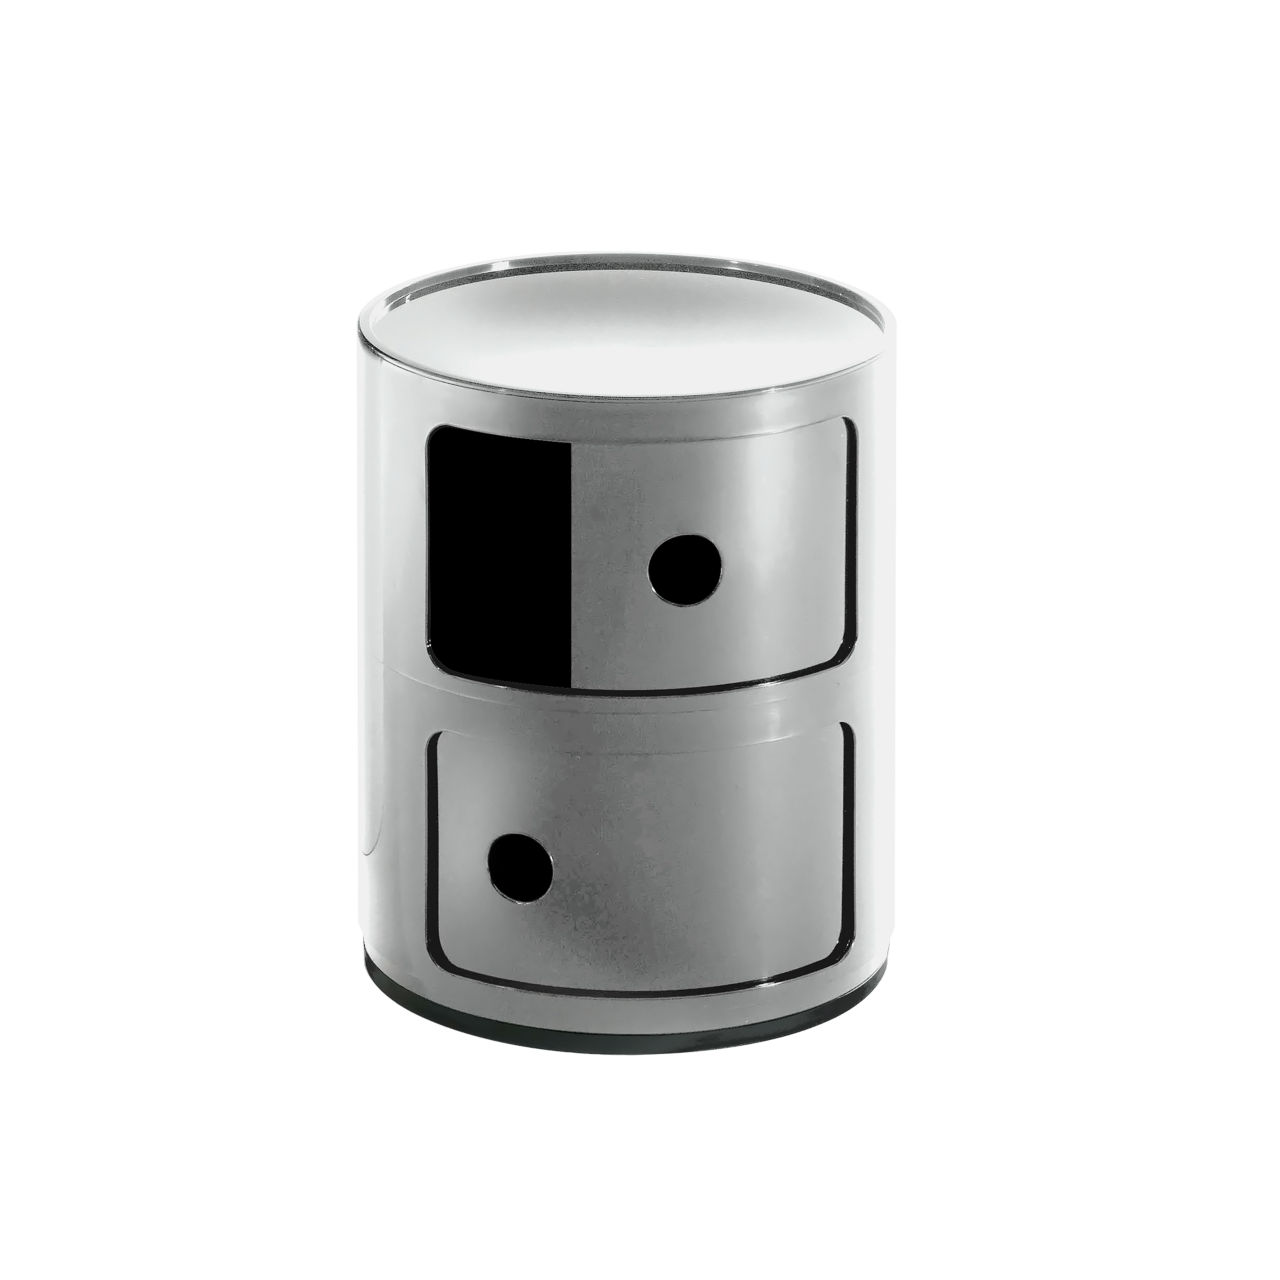 Componibili Small Round Storage Modules in Silver by Kartell